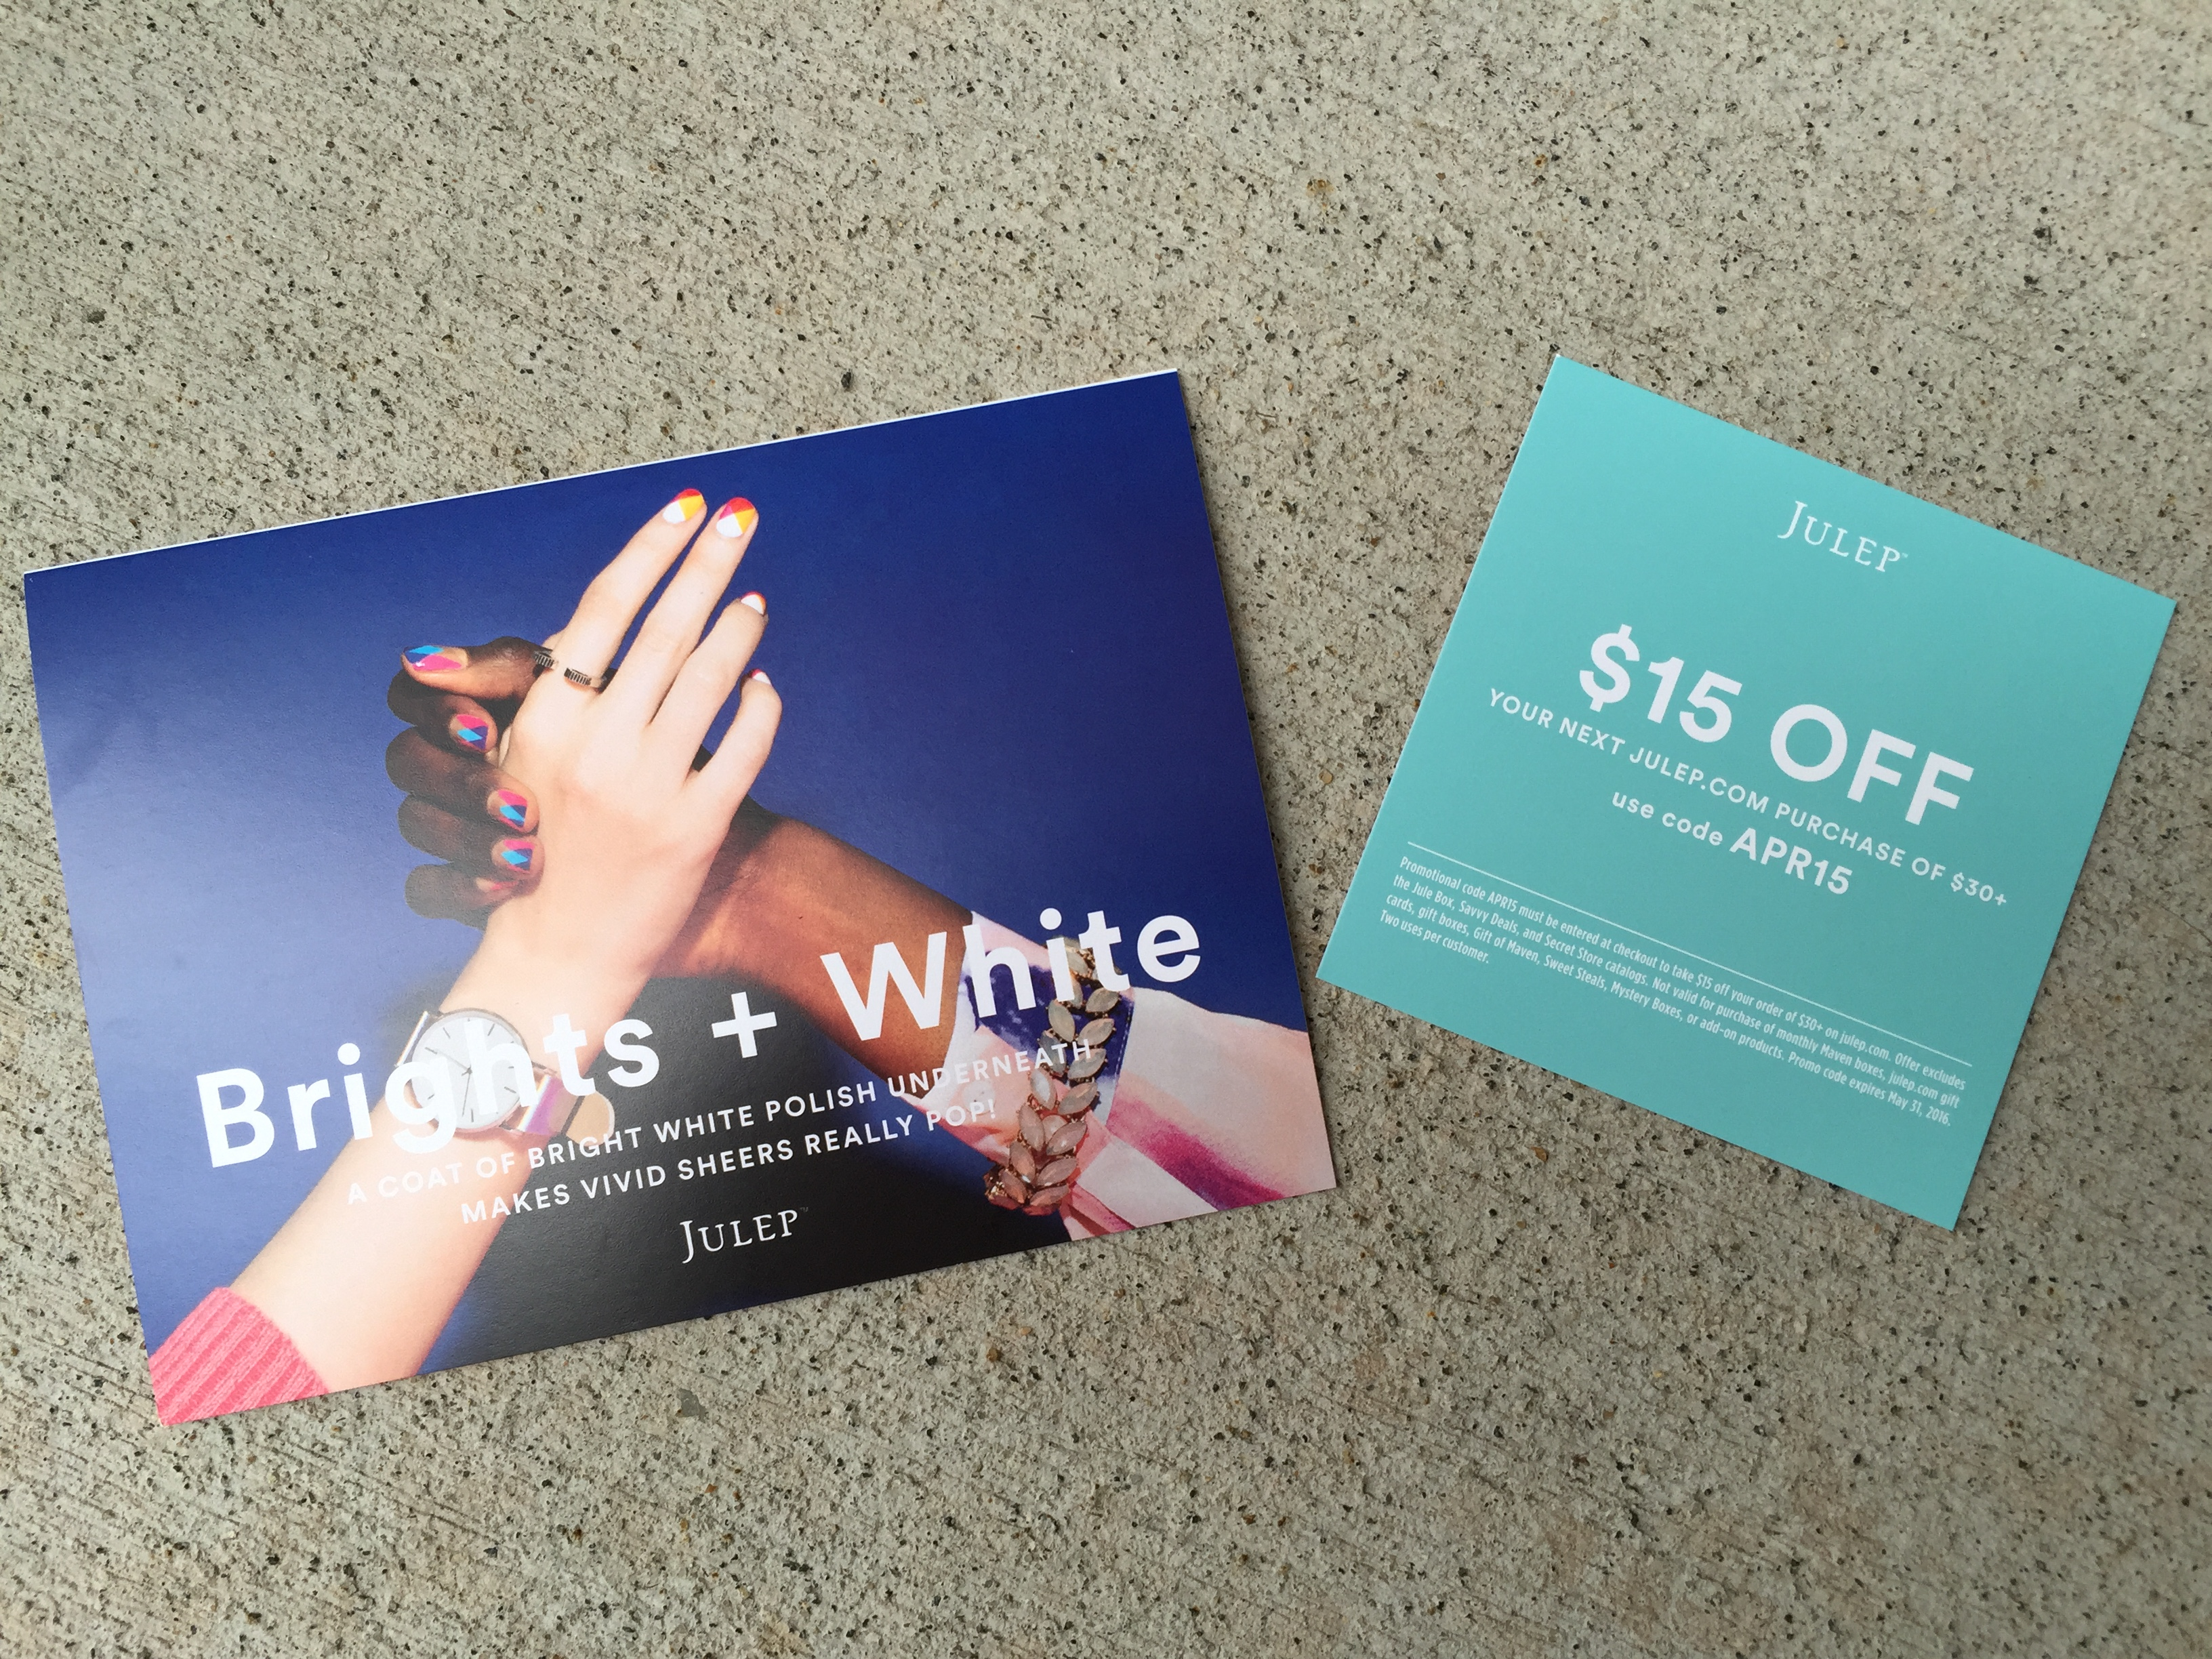 julep april 2016 collection card and discount offer card